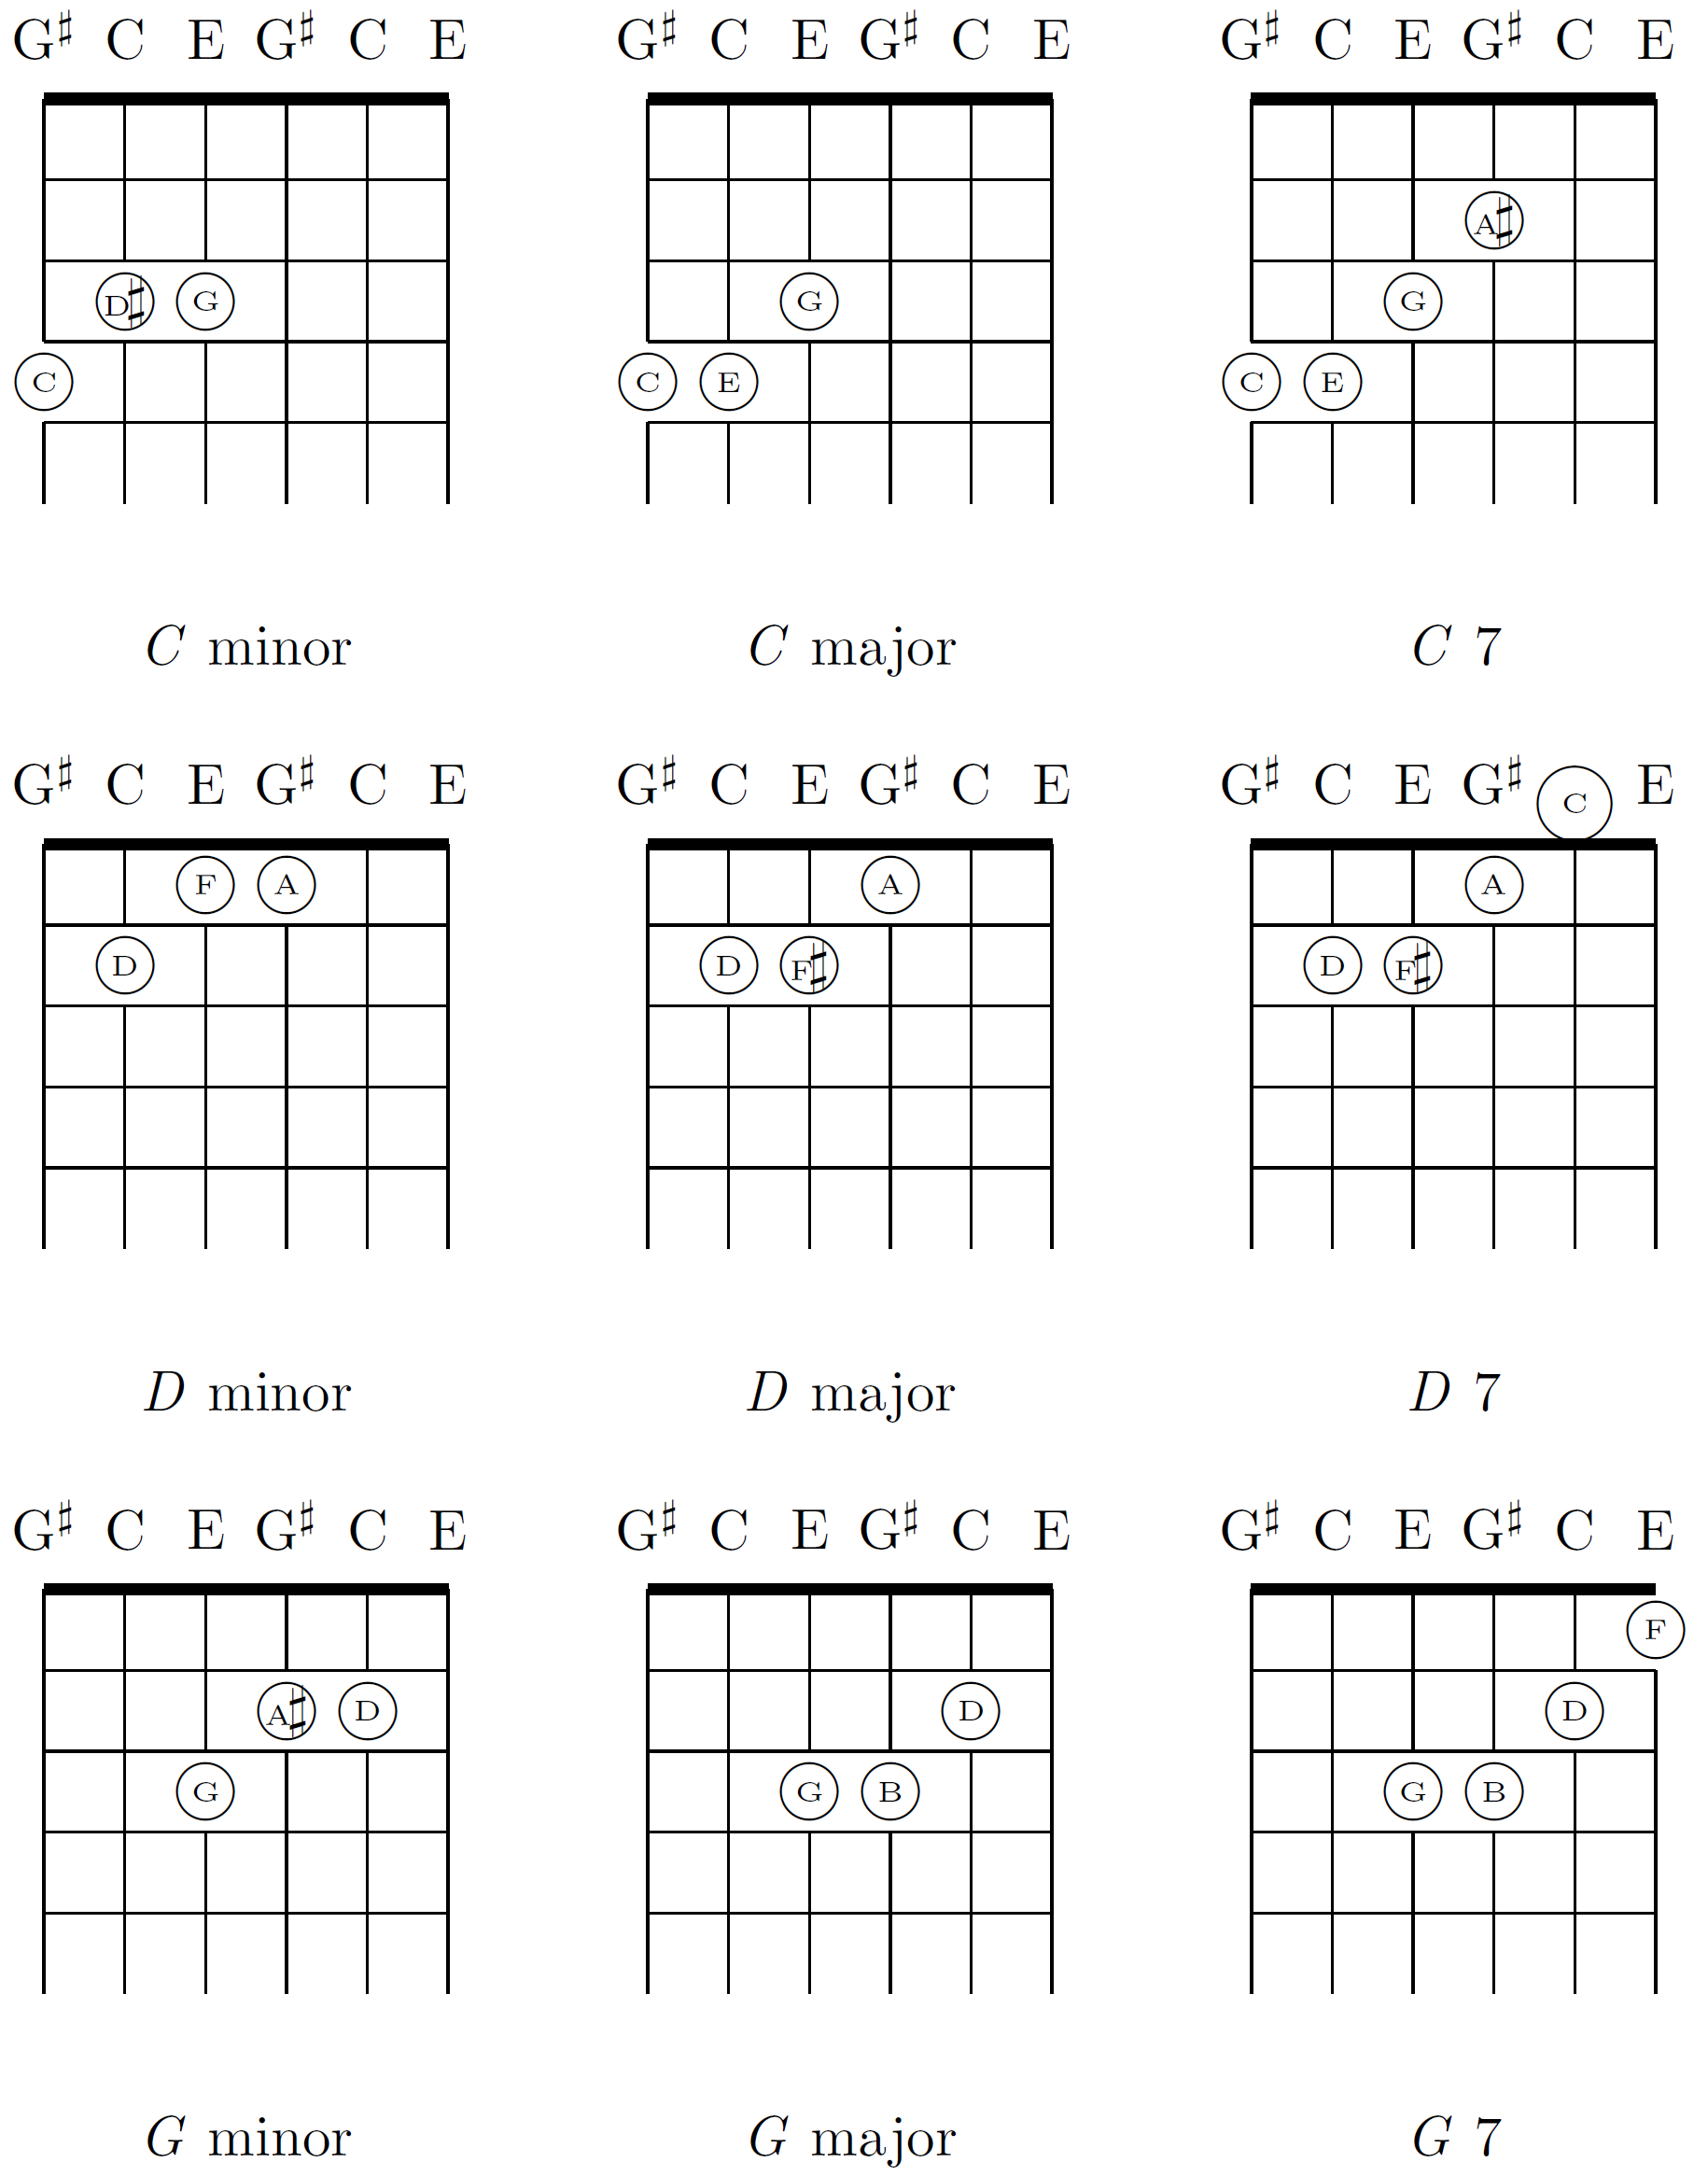 G Minor Chord Filechords In Major Thirds Tuning C D G Minor Major Dominant